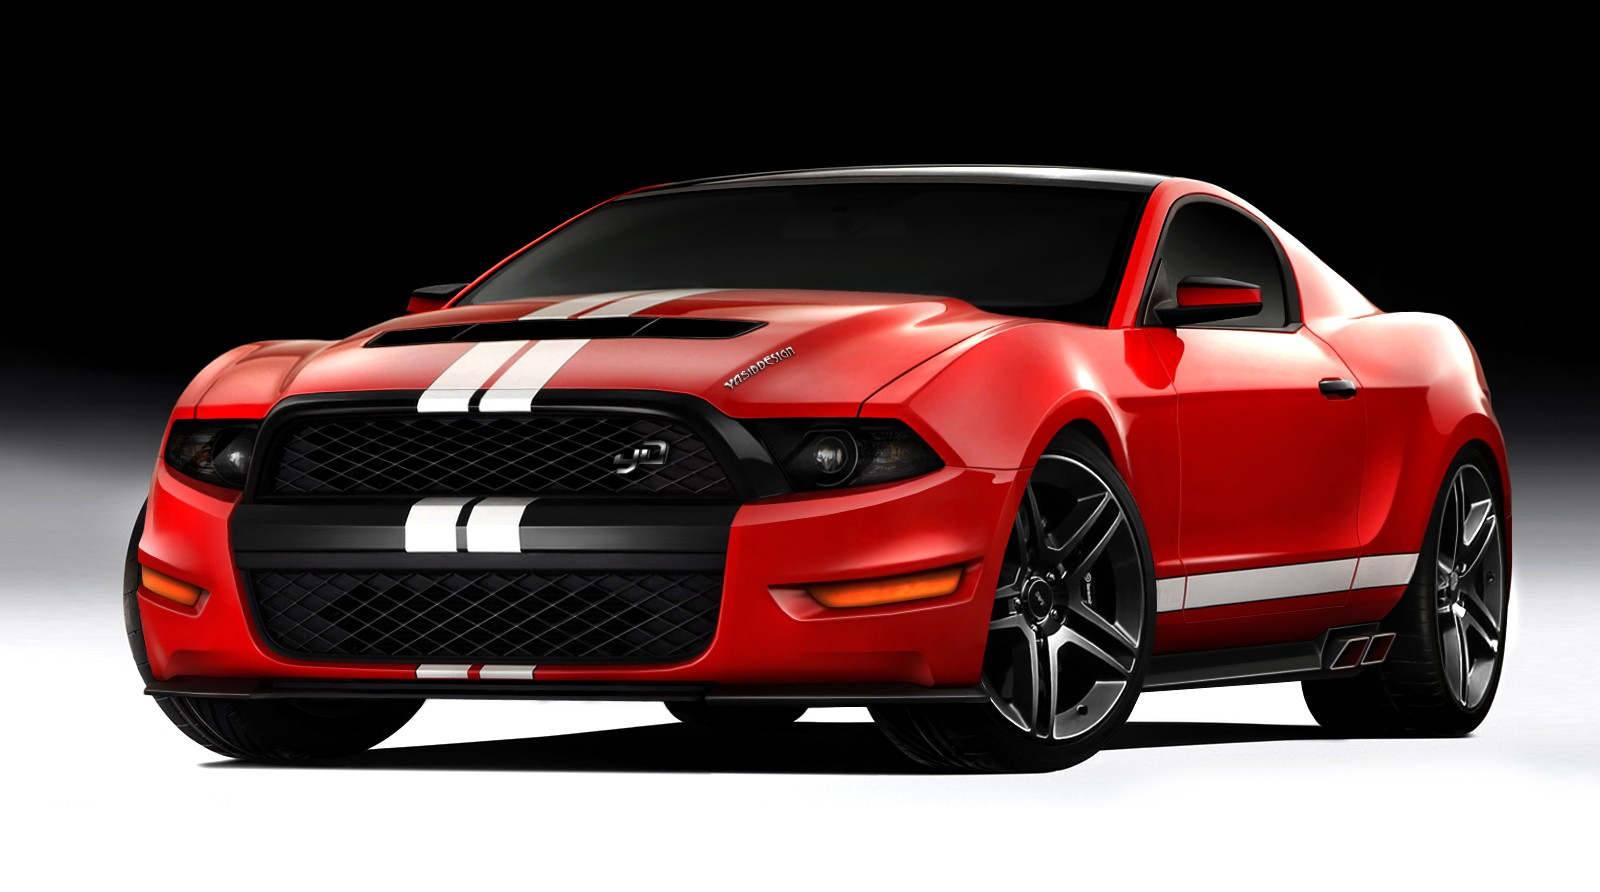 ford mustang sports car 2014 ford mustang sports car 2014 ford mustang 1600x892